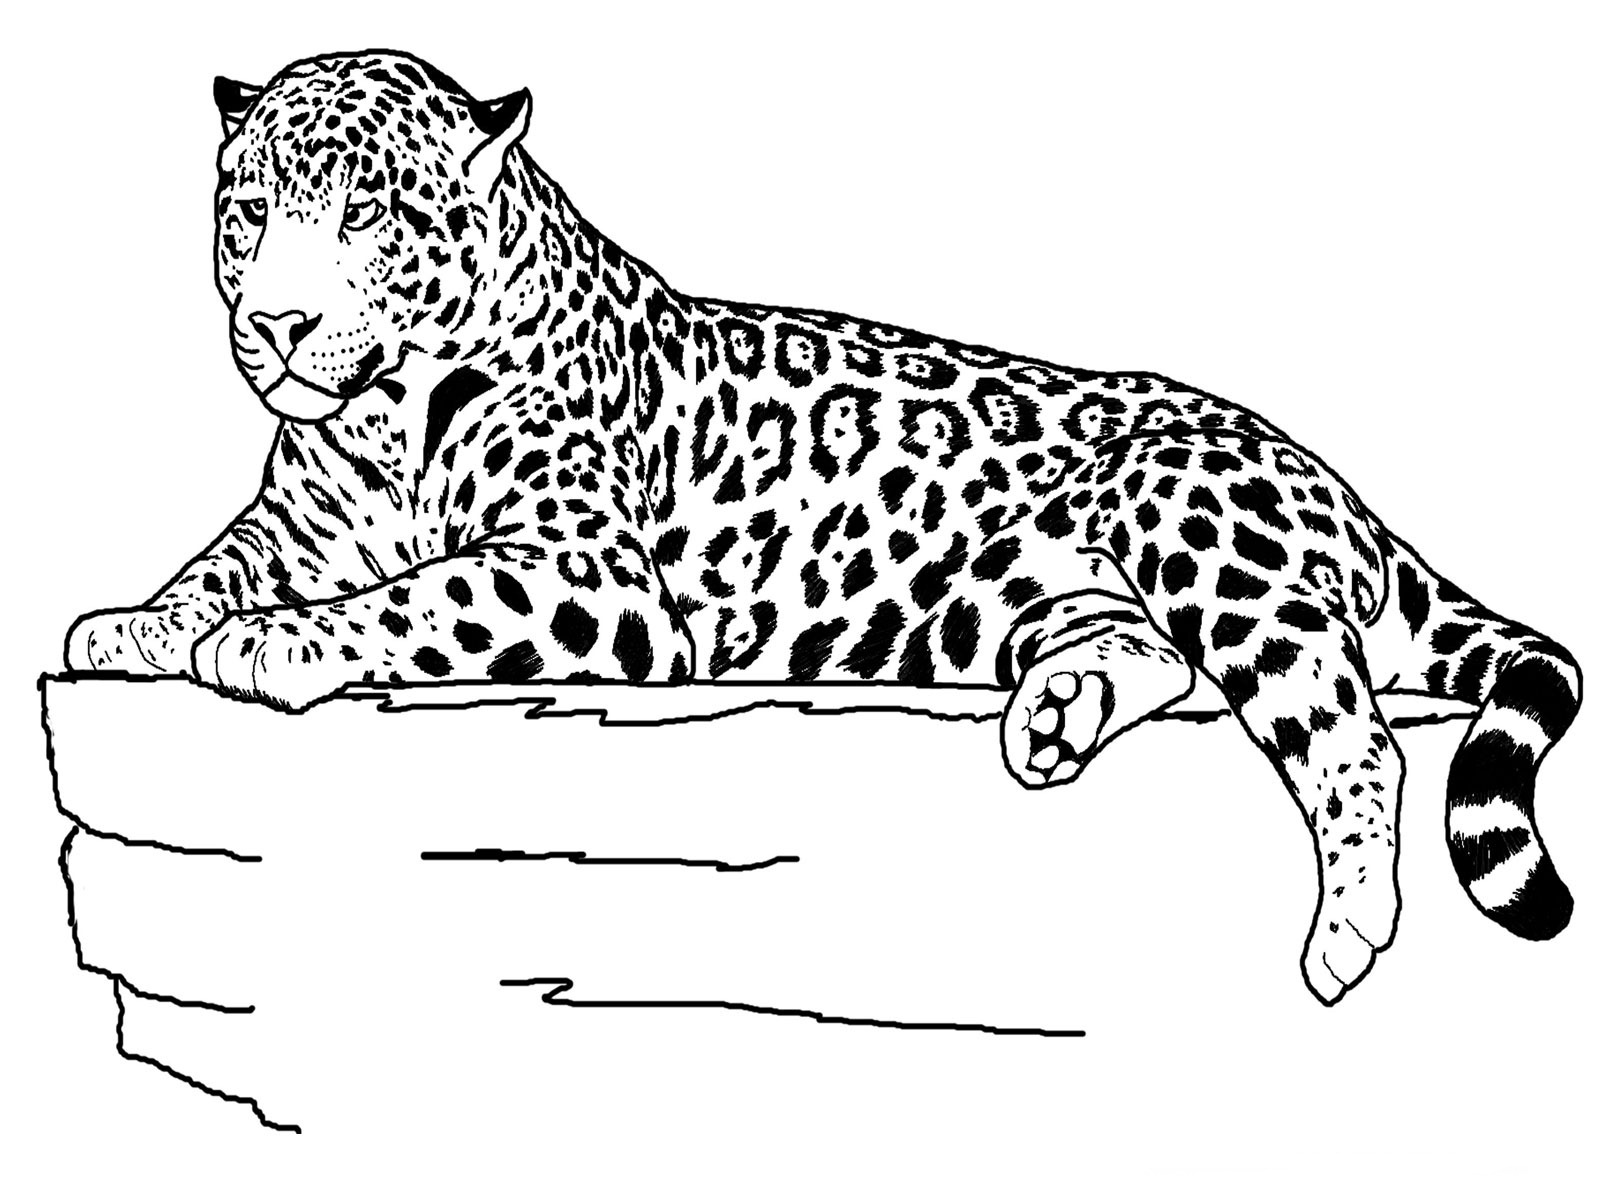 coloring pages animals free - free printable cheetah coloring pages for kids